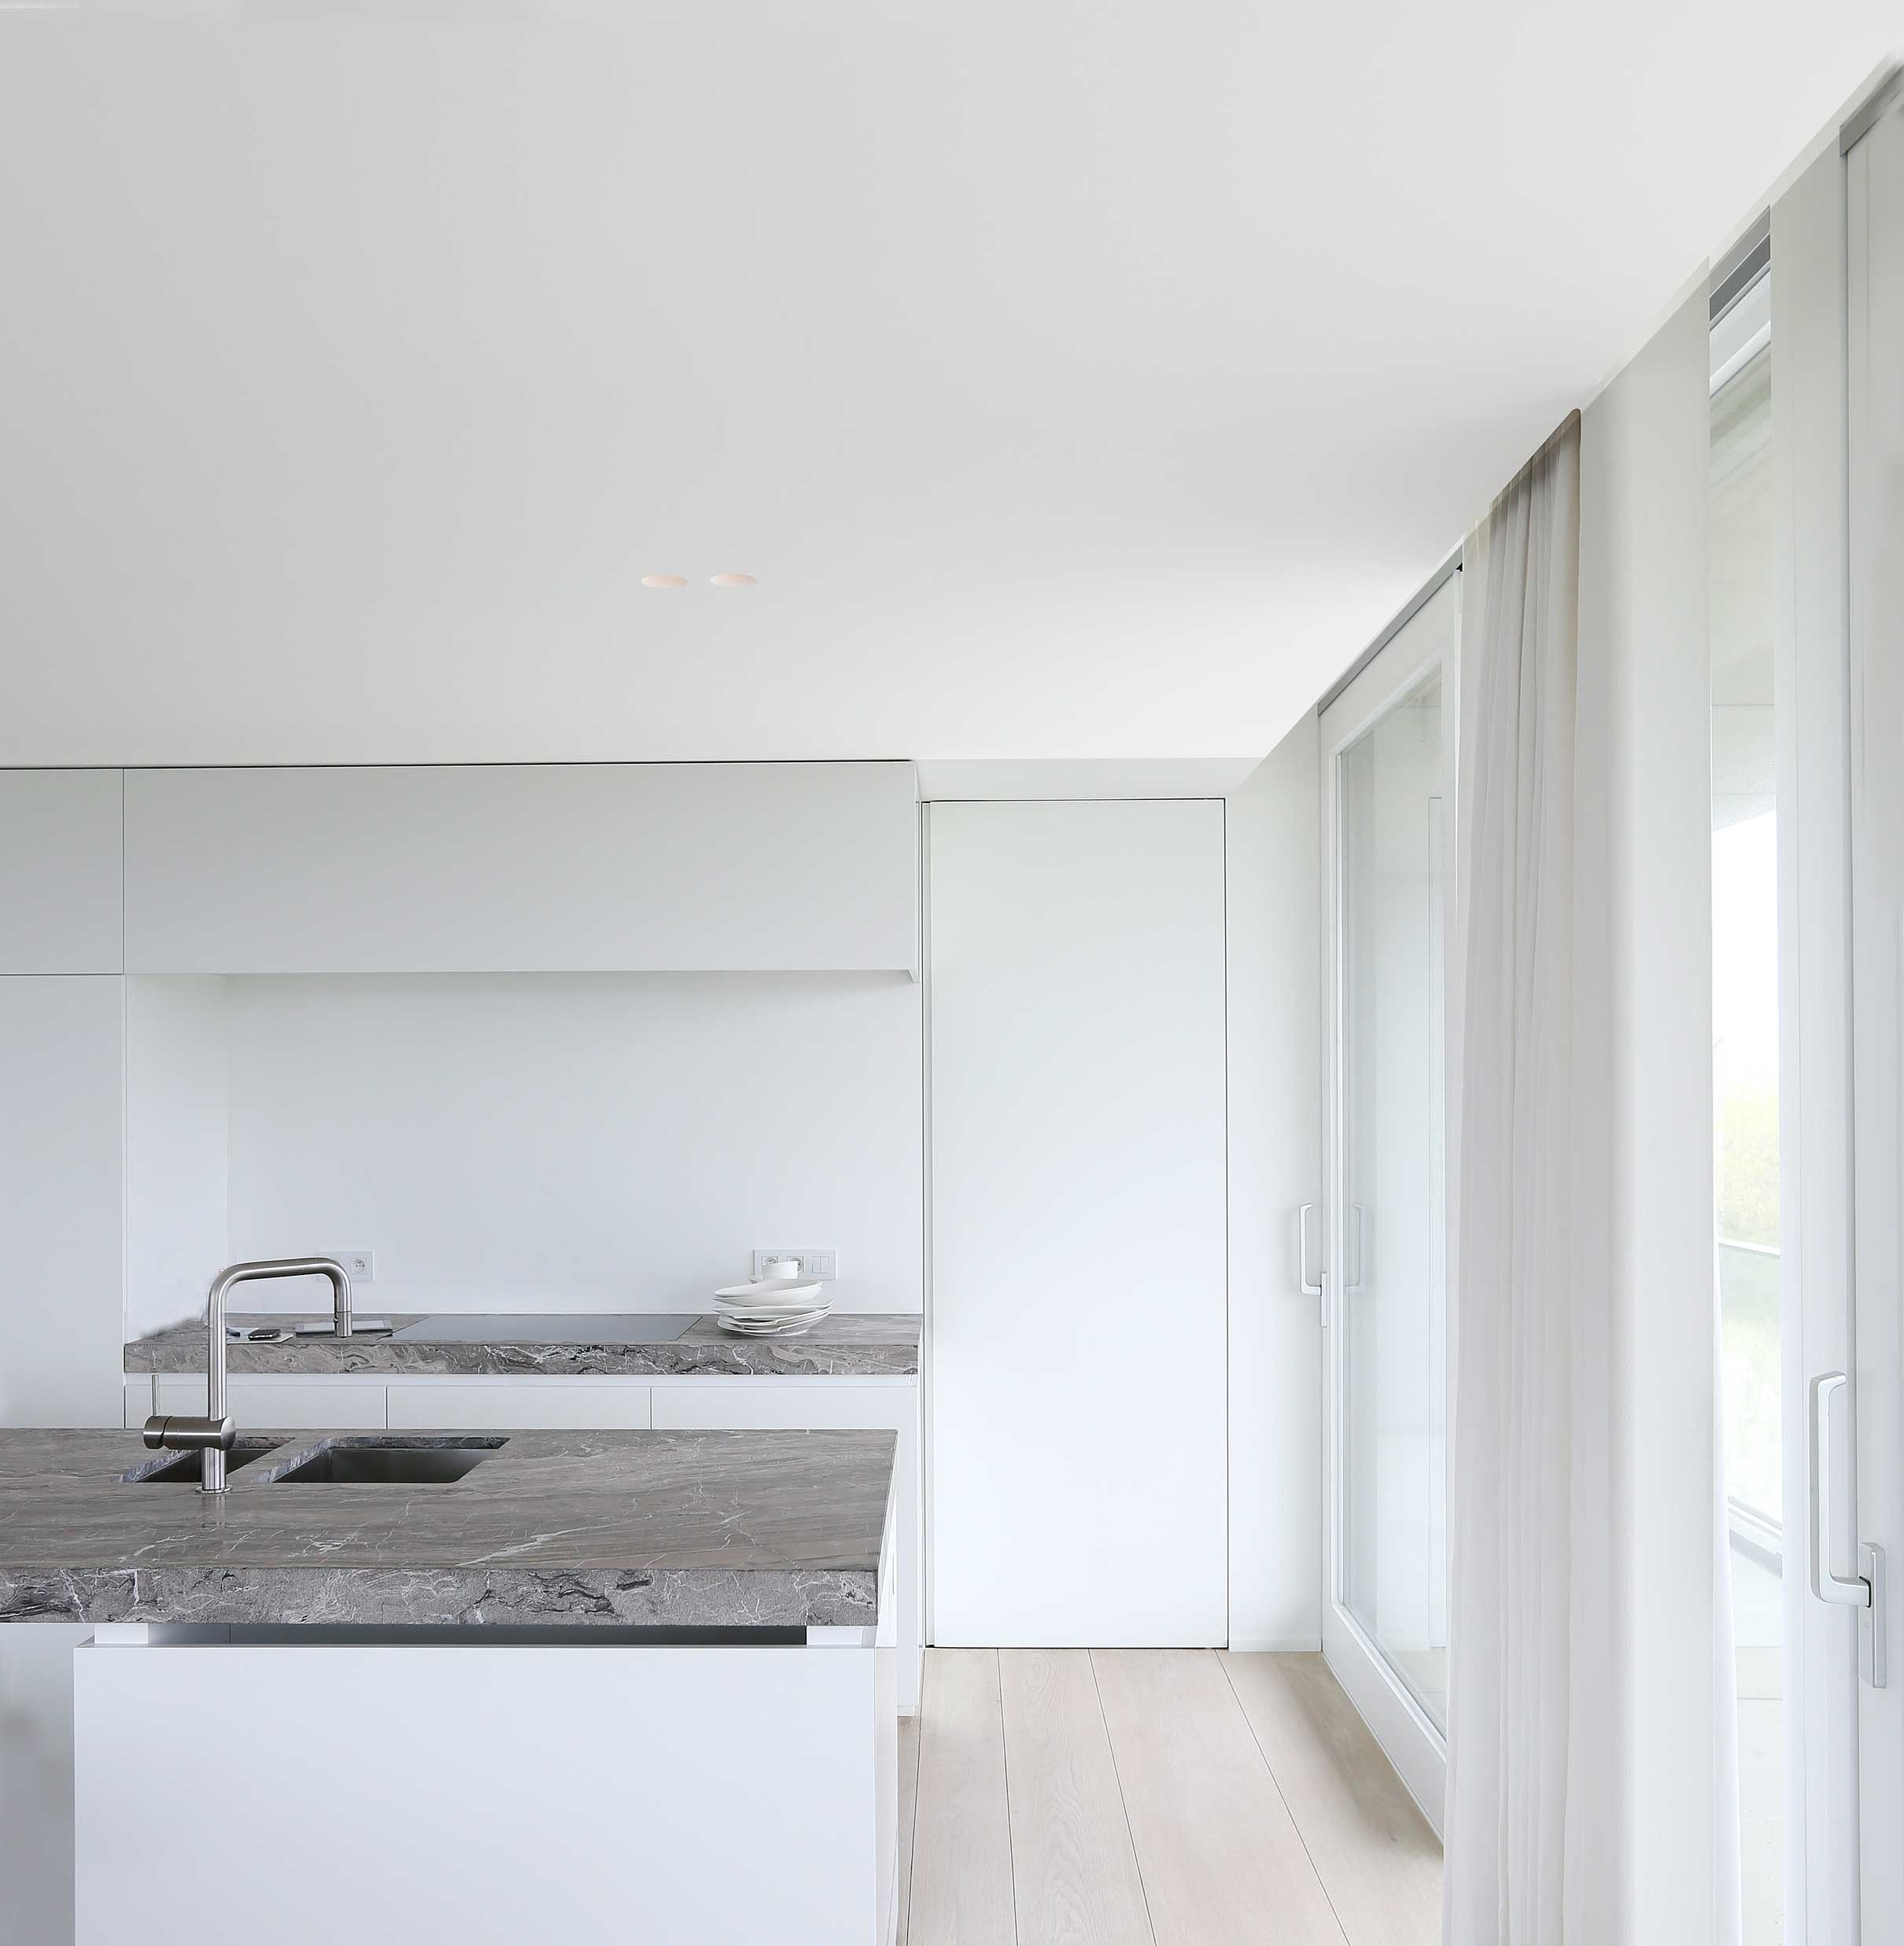 Rietveldprojects.be-ArneJ-duinen-design-architectuur-kust